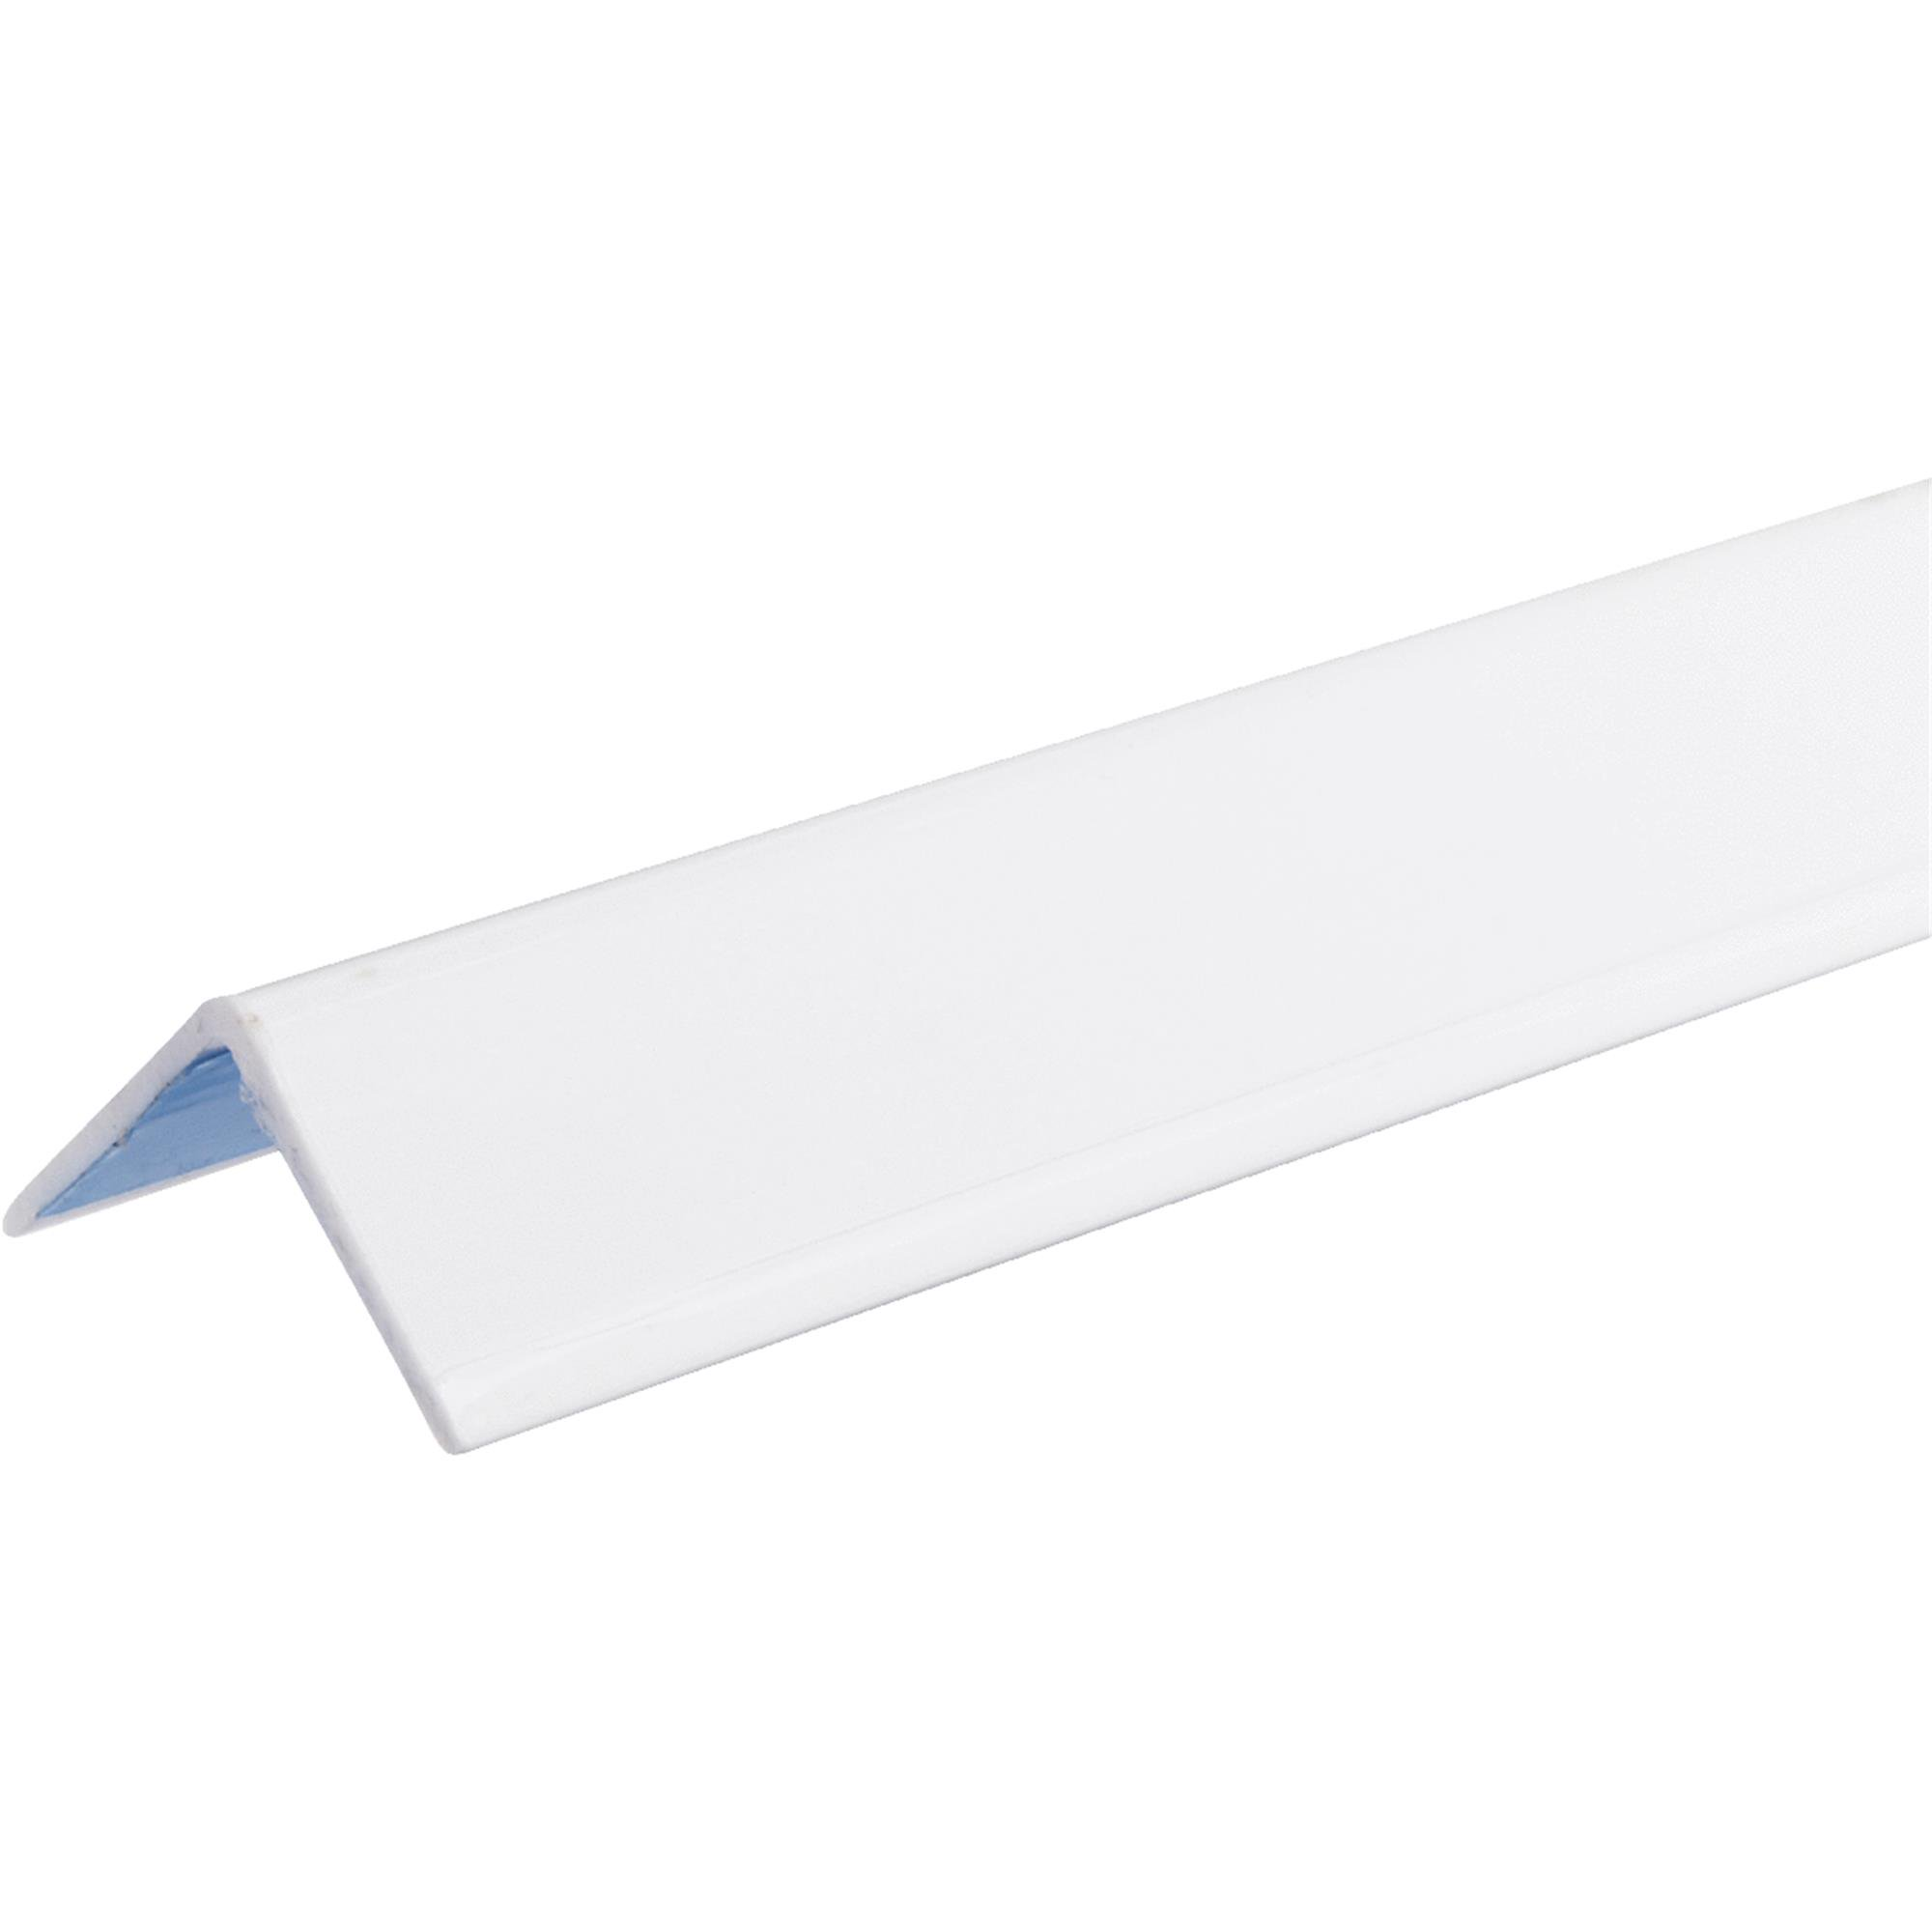 Self-Adhesive Corner Guard by Wall Protex